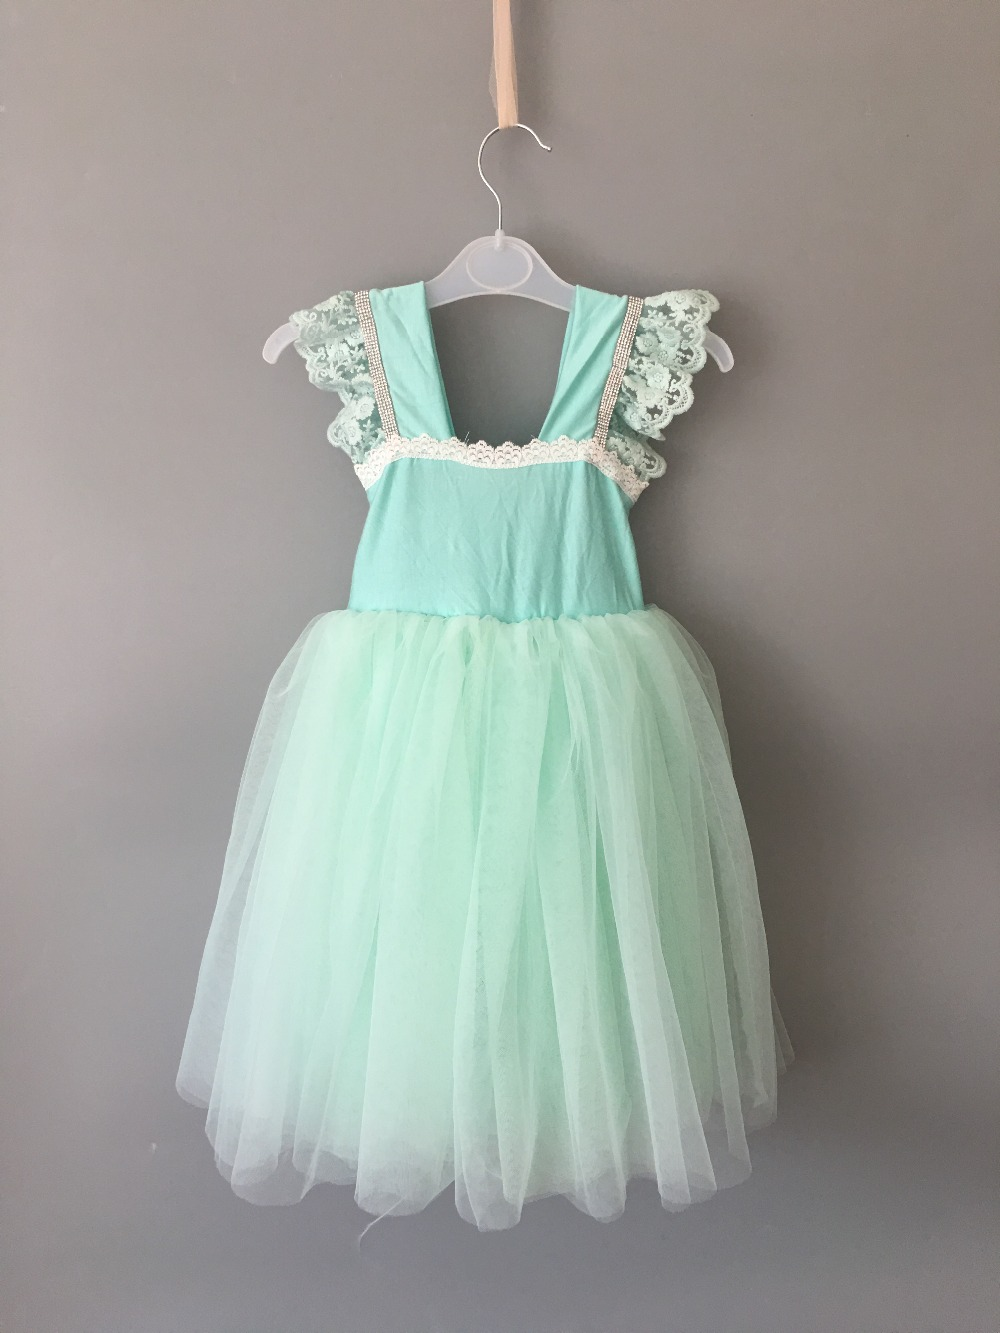 Summer new girl puff sleeve tutu dress baby girl rhinestone party dress toddler girl party dress